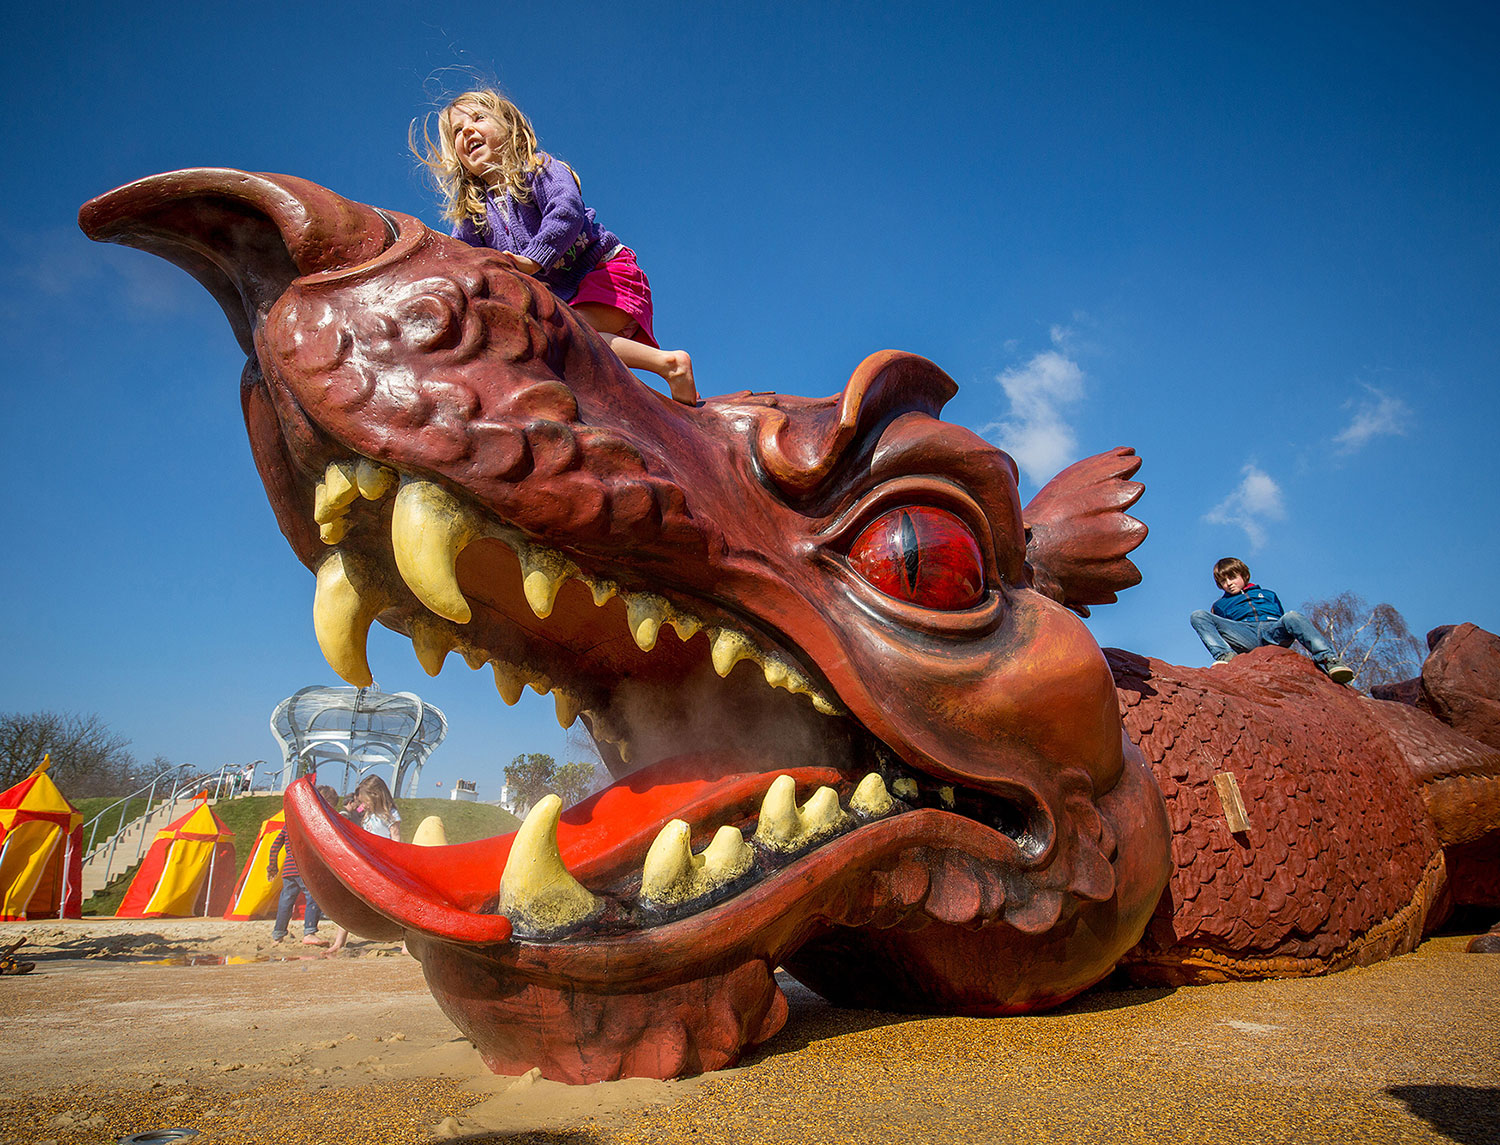 The steam-emitting, 30-metre long dragon